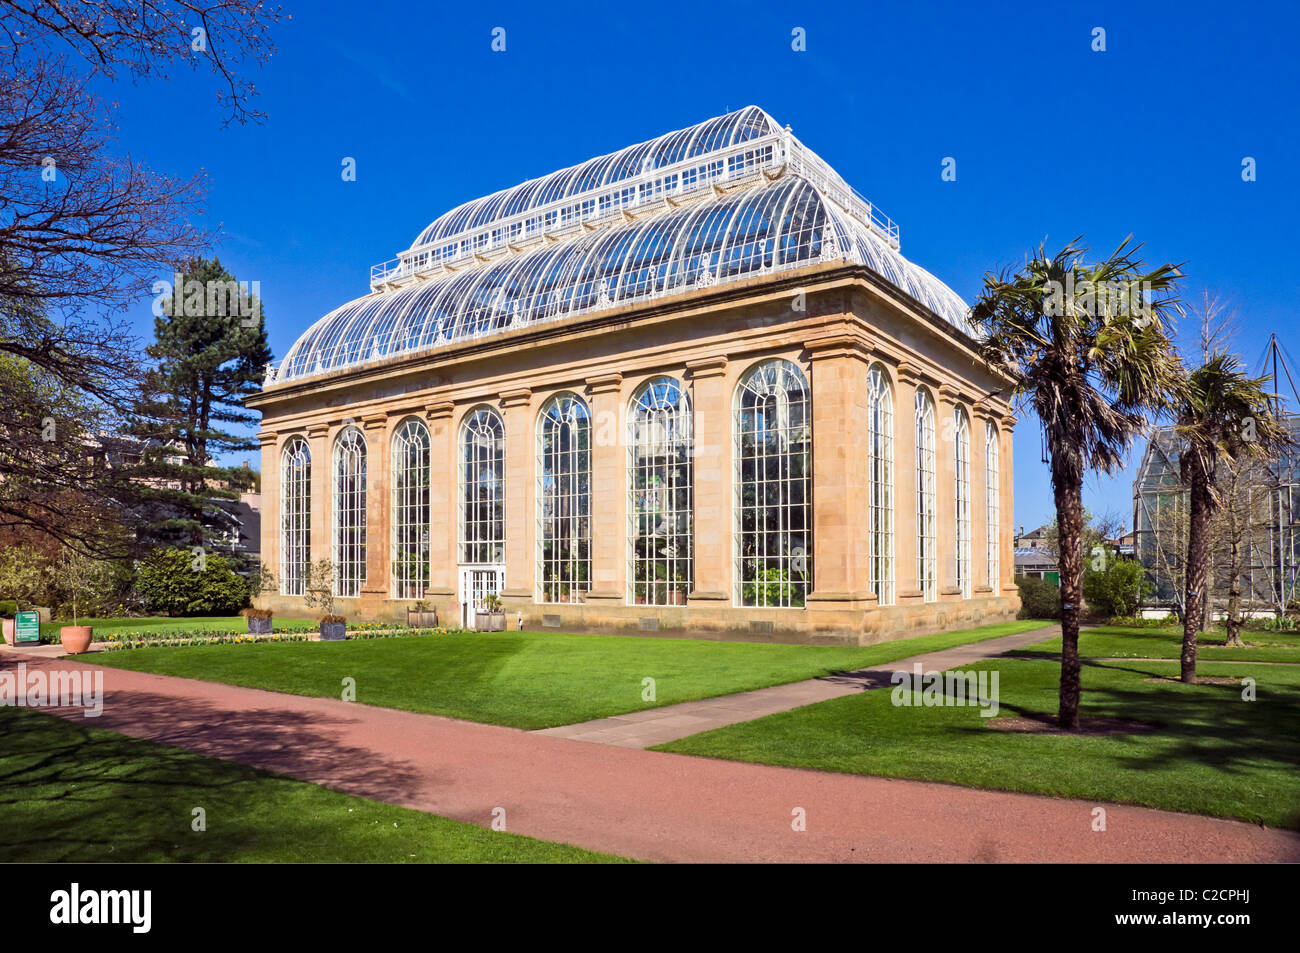 Palm House and entrance to glasshouses in The Royal Botanic Garden in Edinburgh Scotland - Stock Image